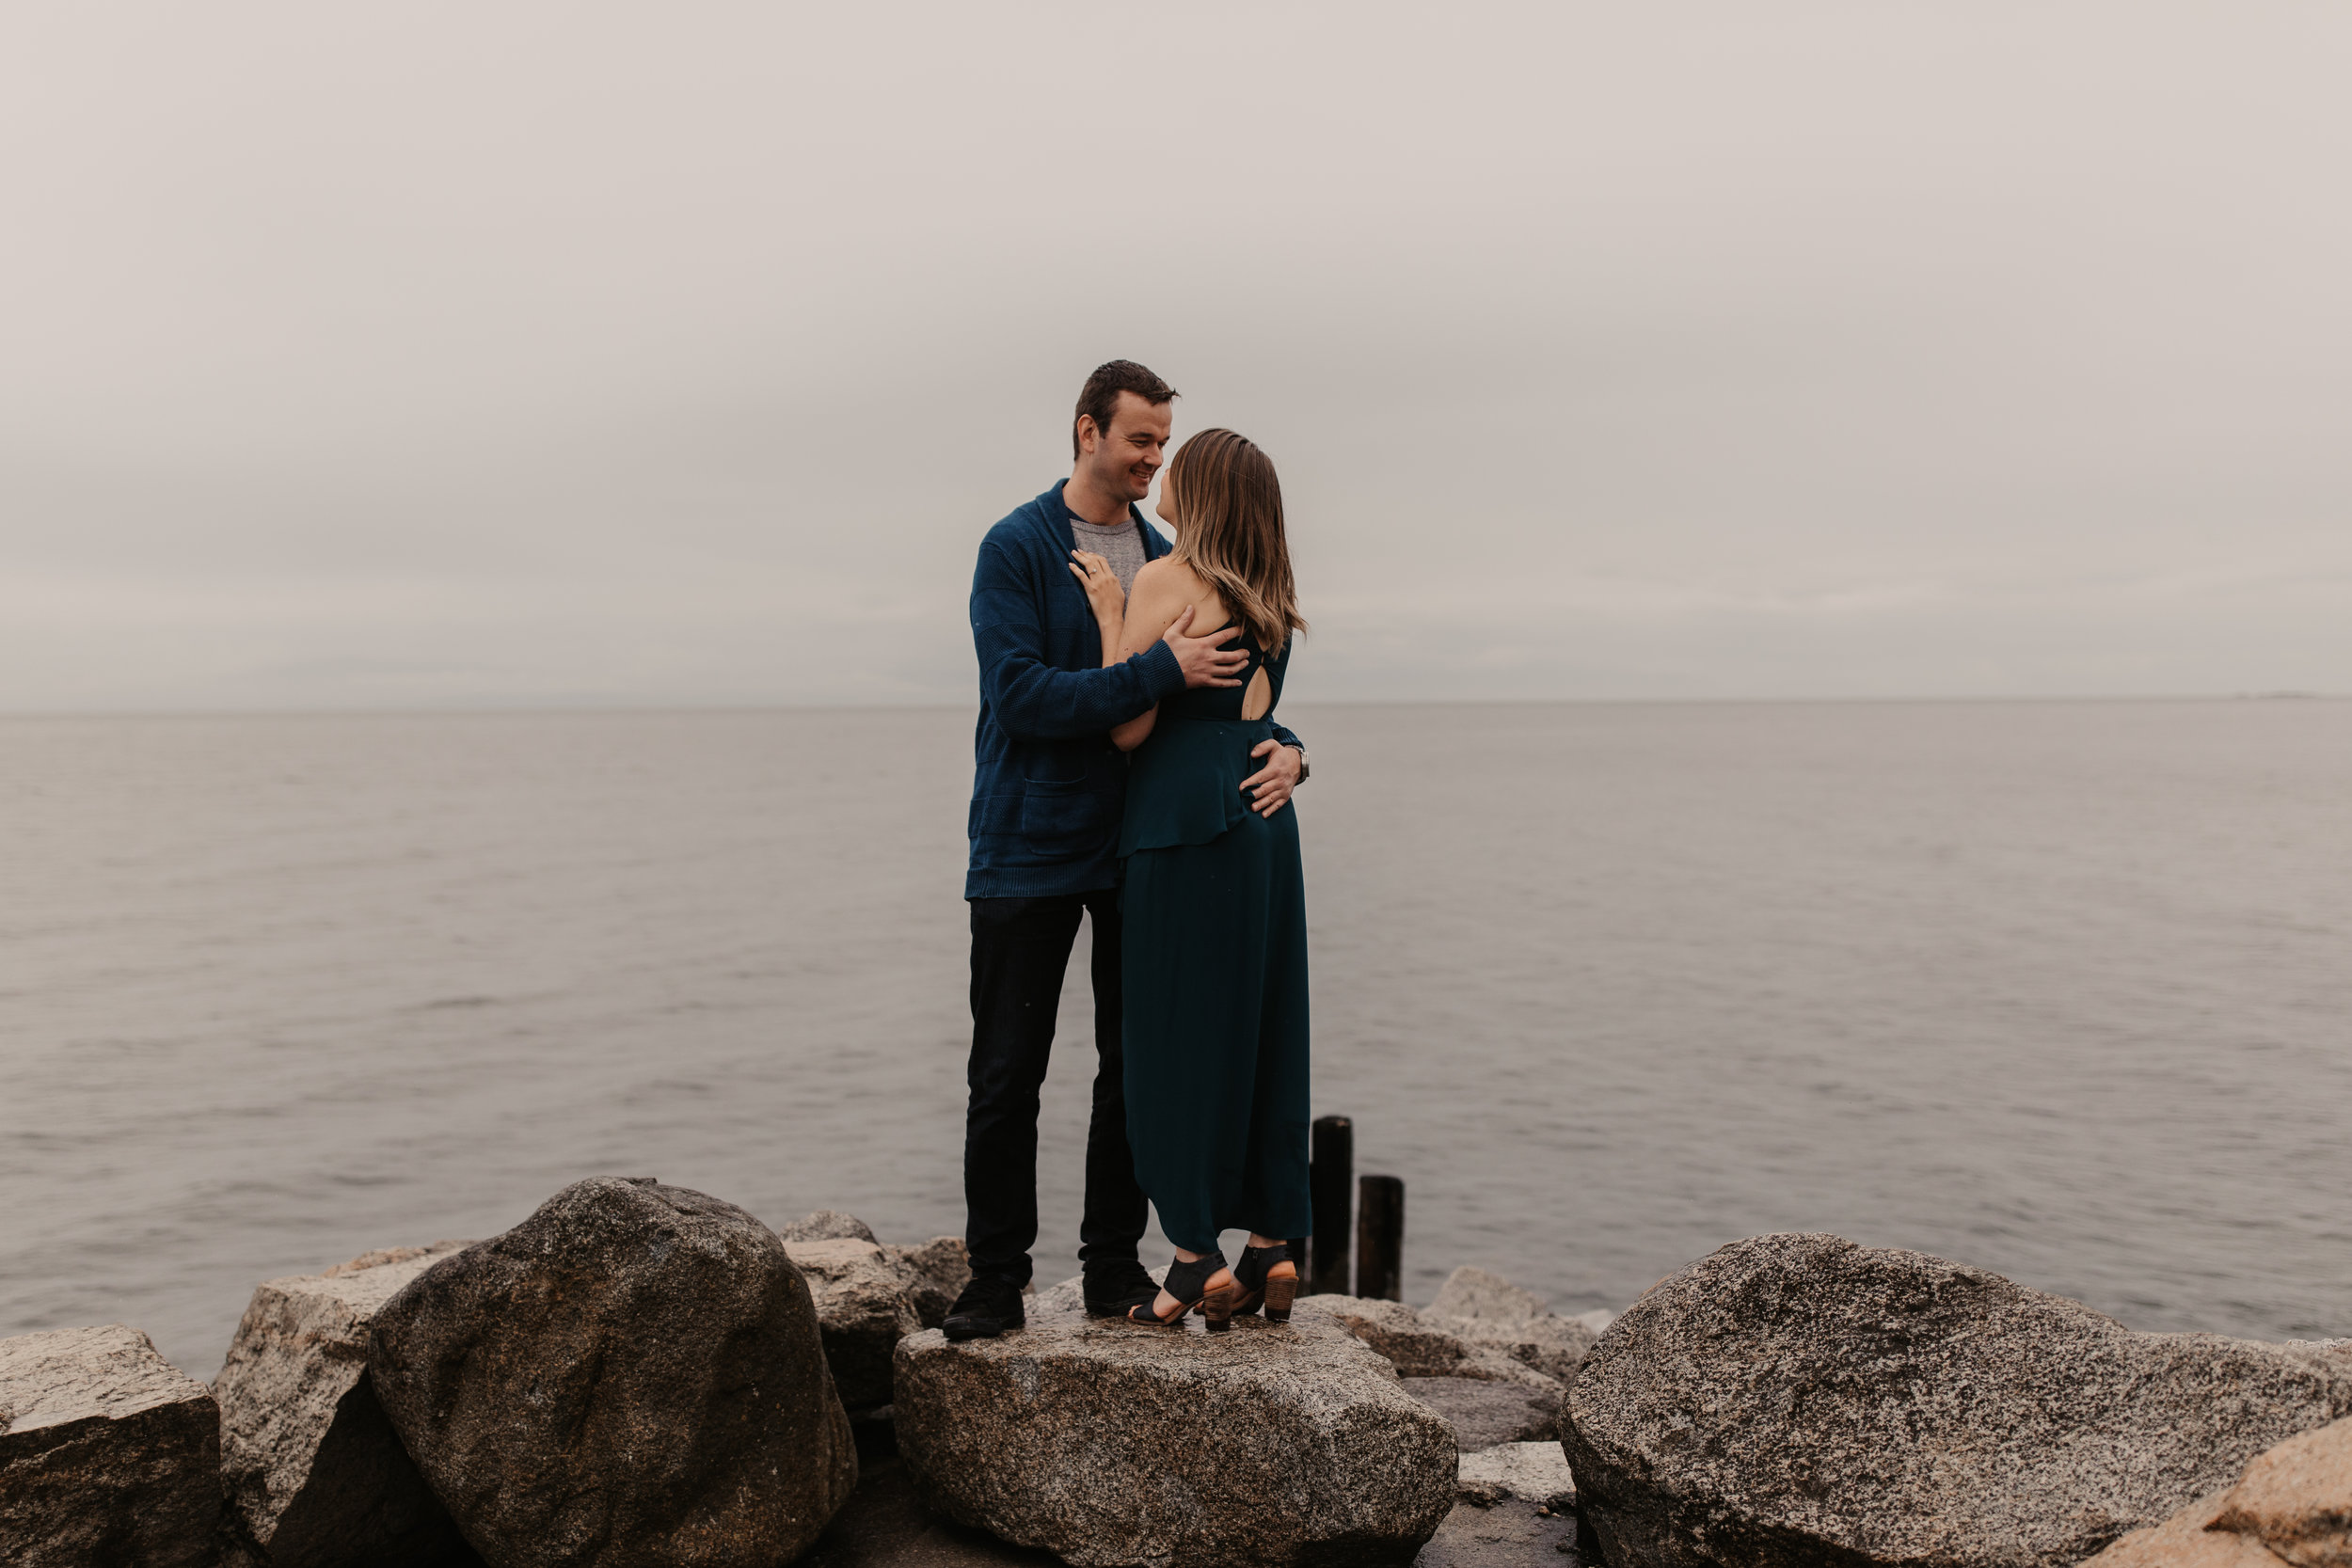 SUNSHINE COAST FOREST & BEACH ENGAGEMENT PHOTOS — Ashley & Antoine — JENNIFER PICARD PHOTOGRAPHY256.JPG